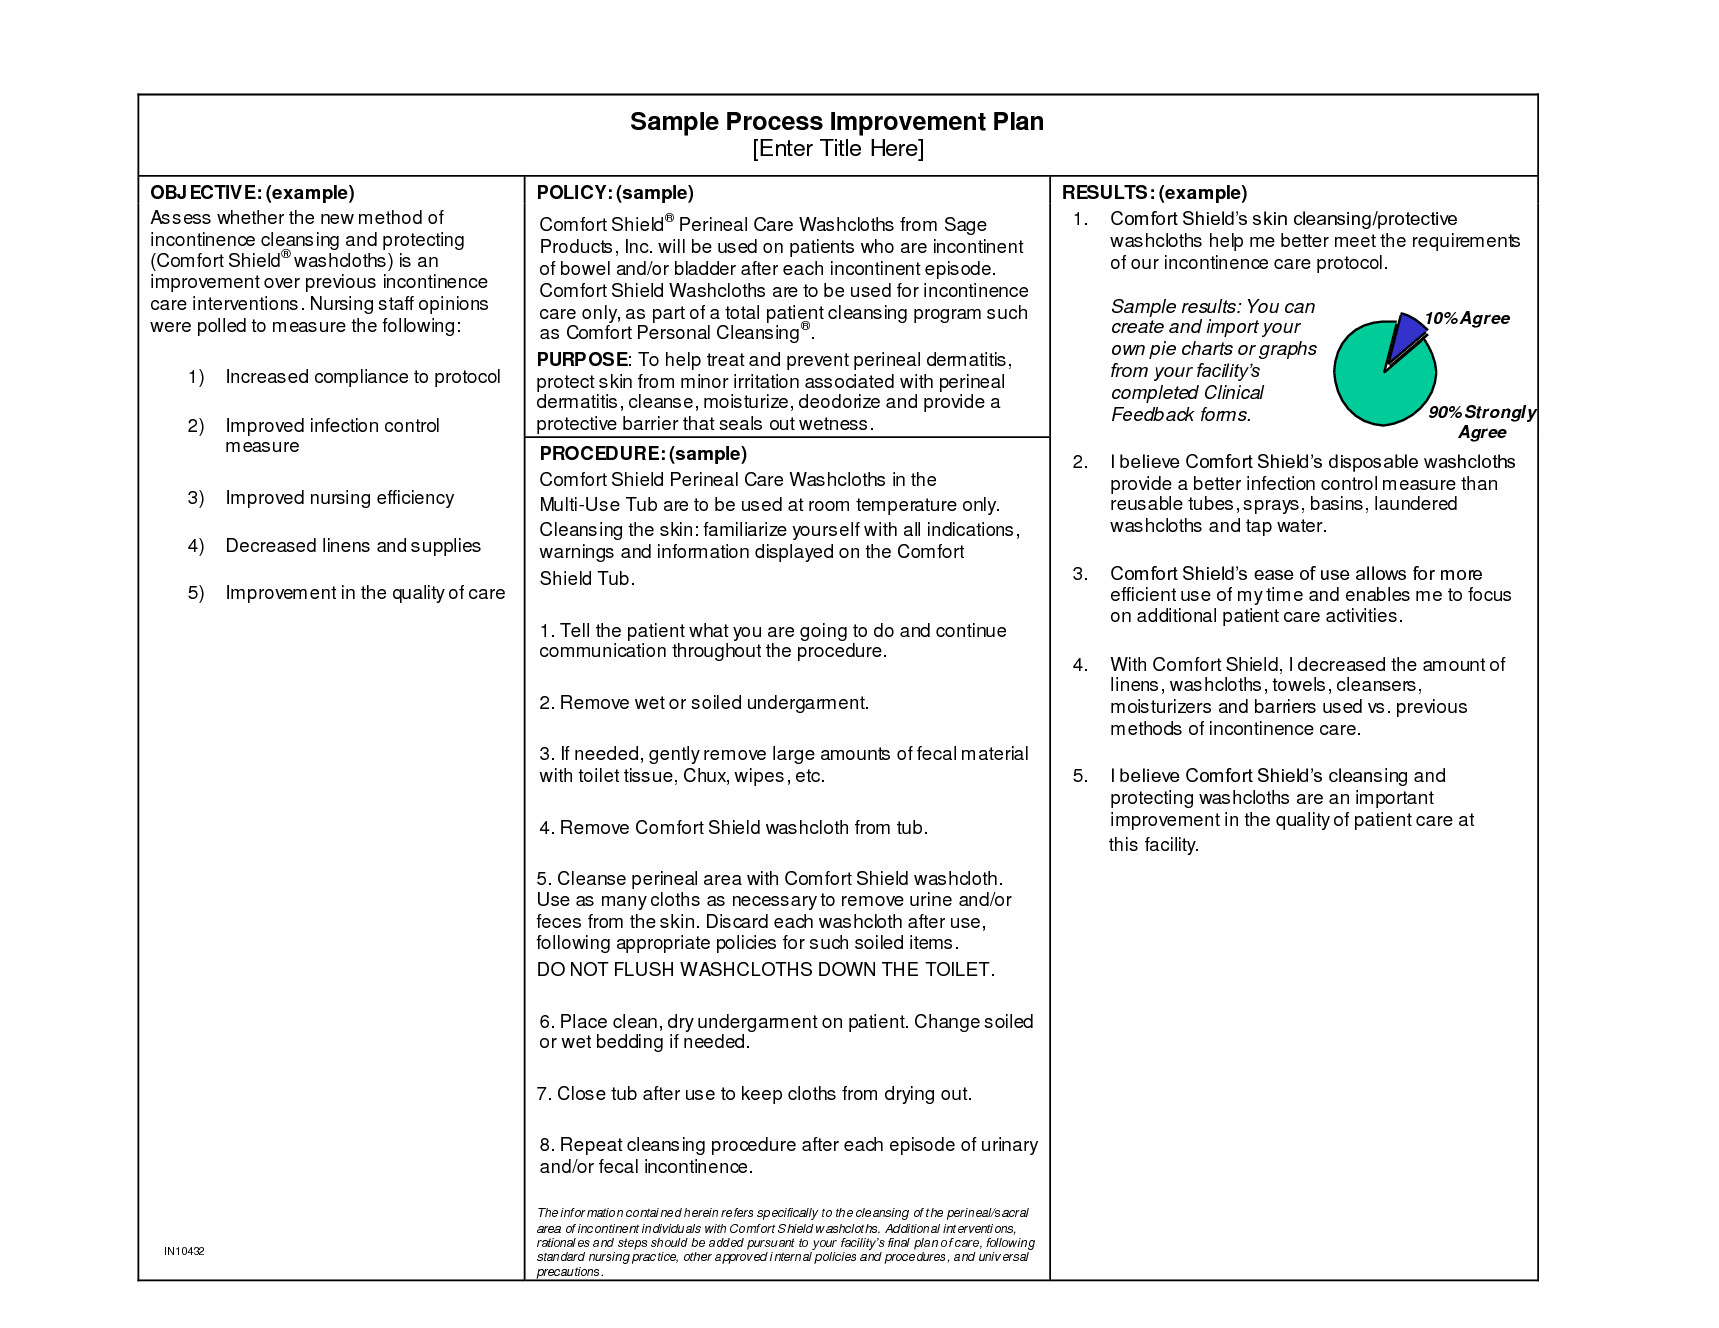 Process Improvement Plan Templates Business Process Improvement Plan Template 2010 the